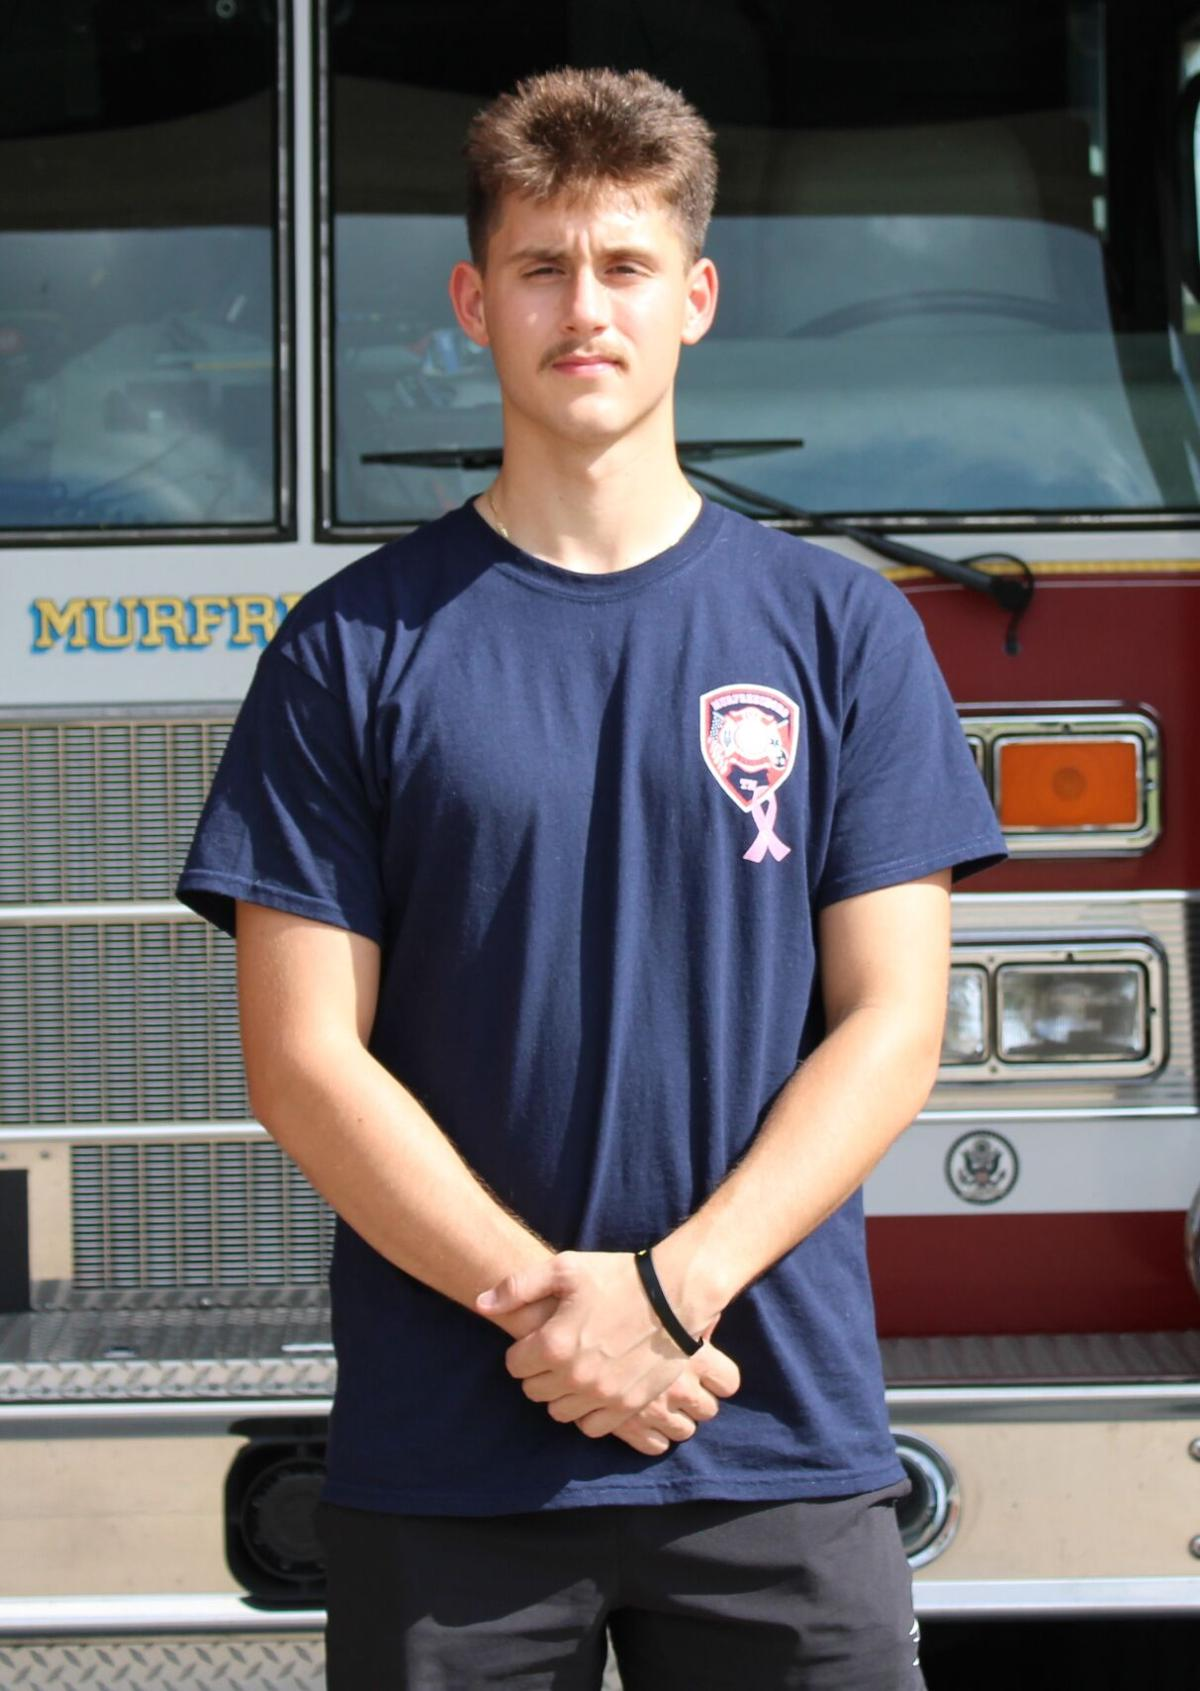 Murfreesboro firefighter Nolan McGril also a National Guard medic